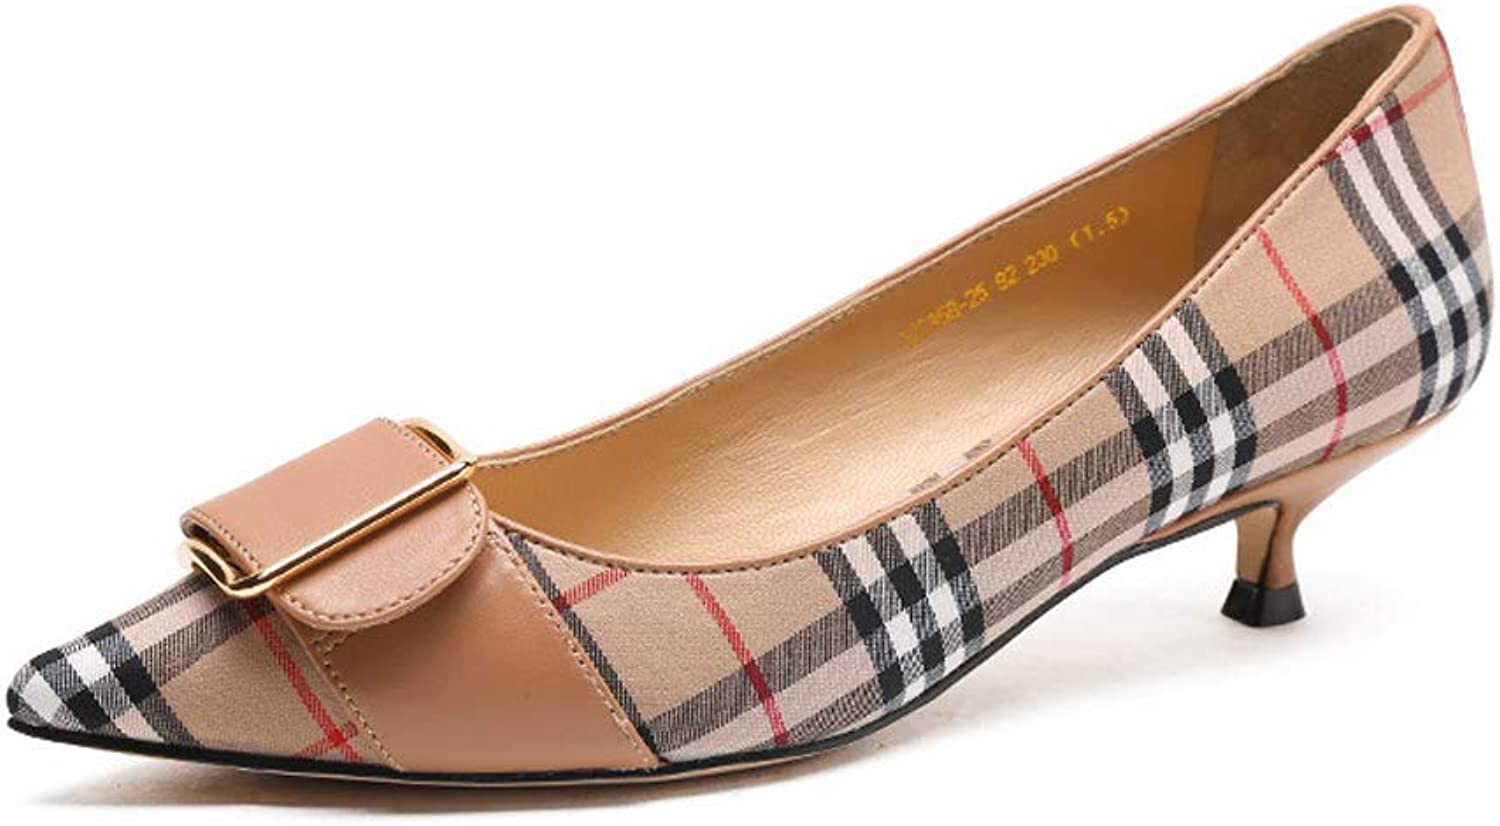 Leather high Heel Women's shoes, Formal Women's shoes Pointed Plaid shoes